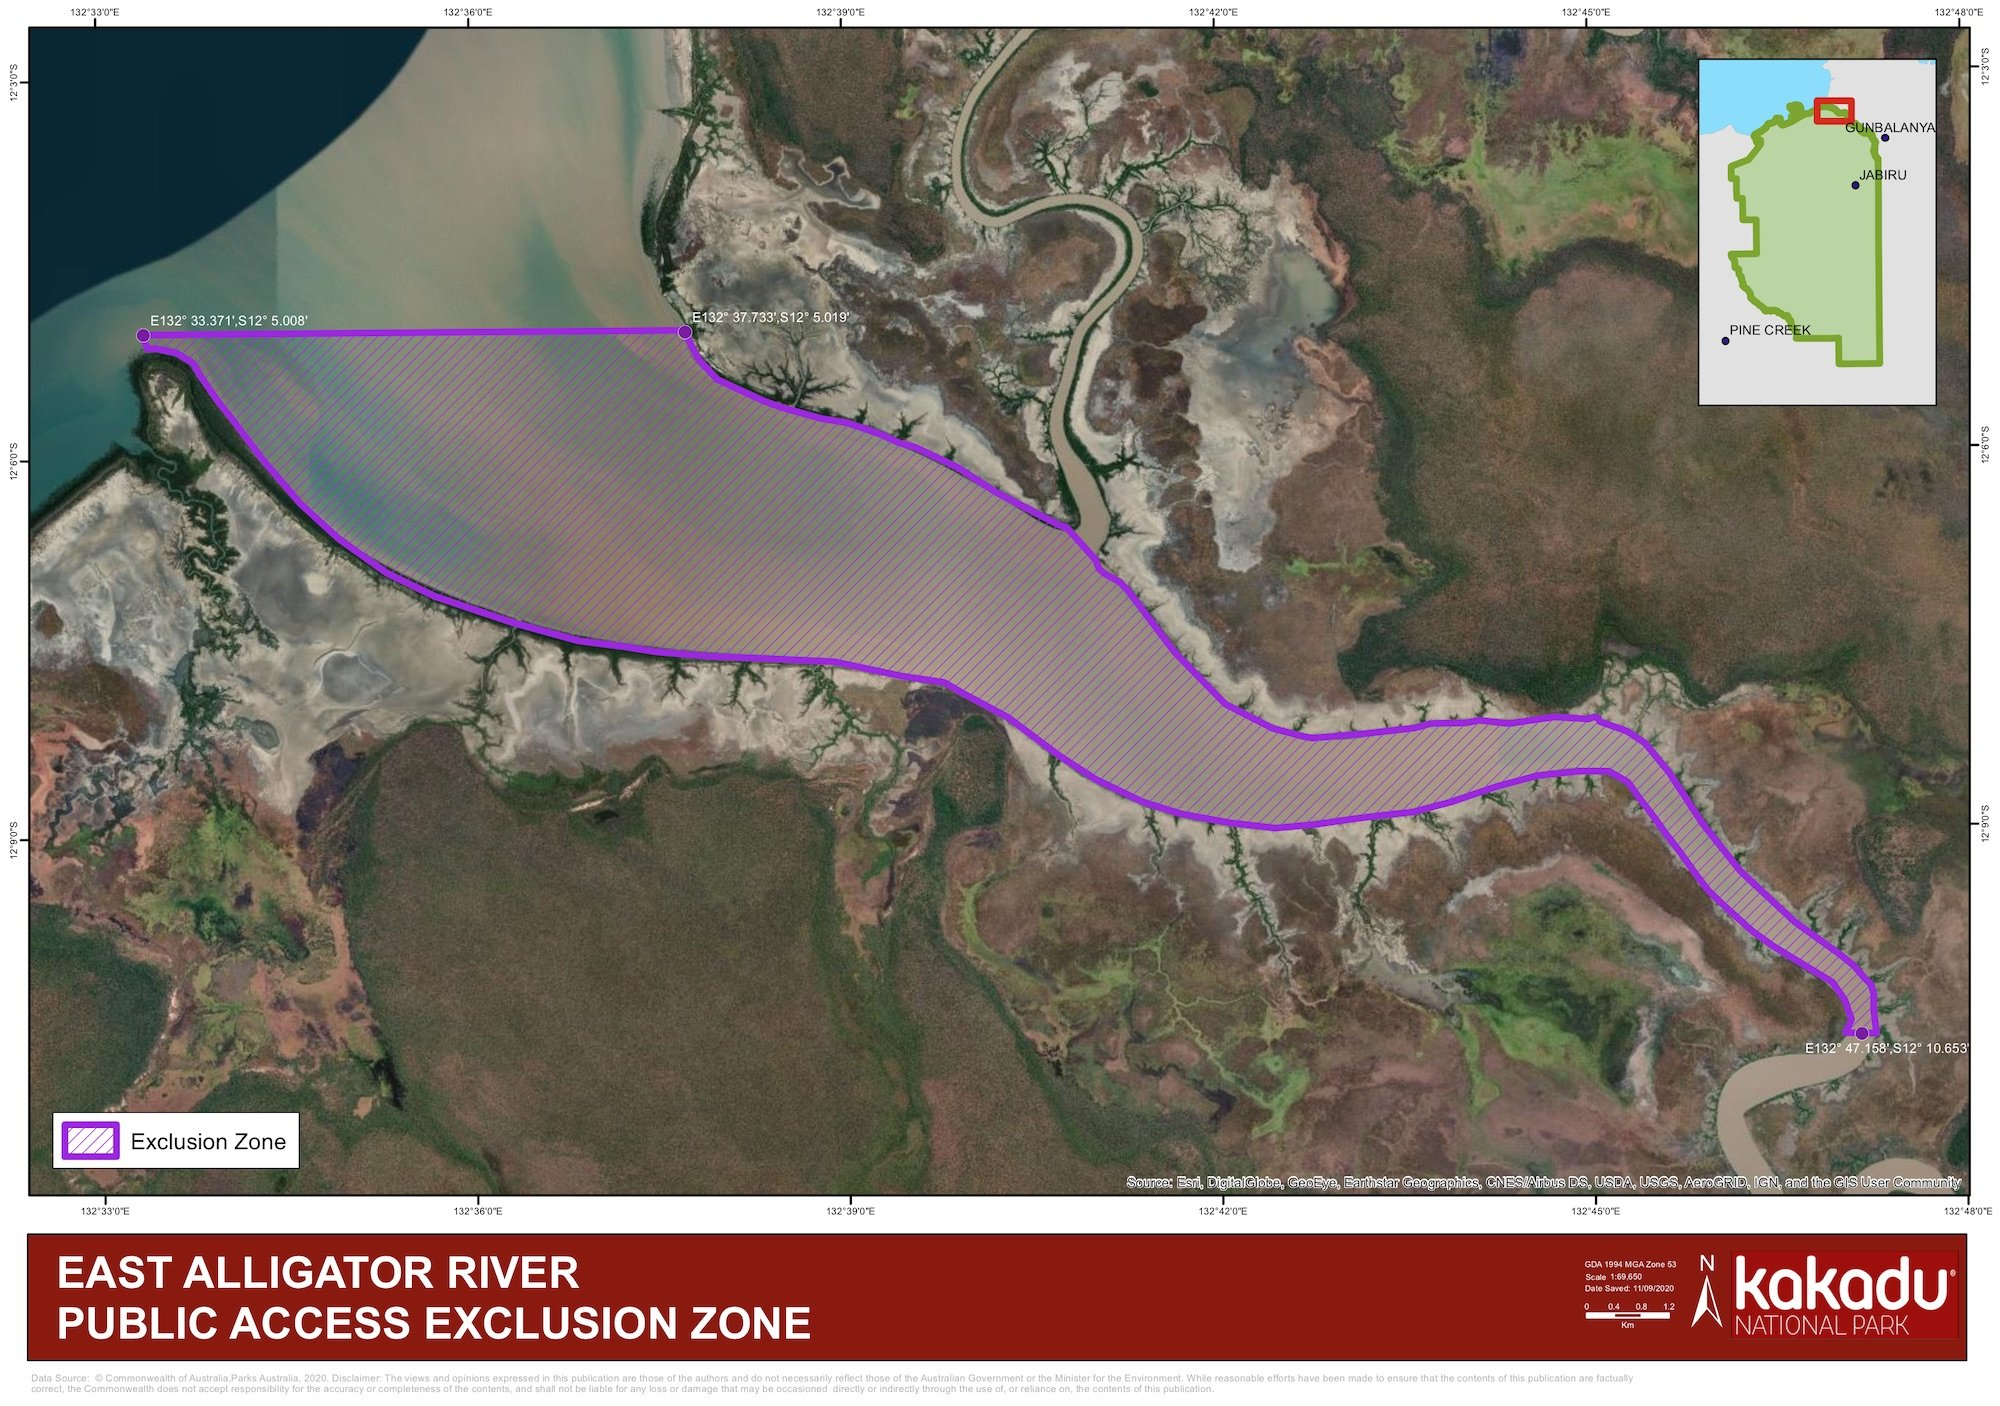 Exclusion zone in East Alligator River